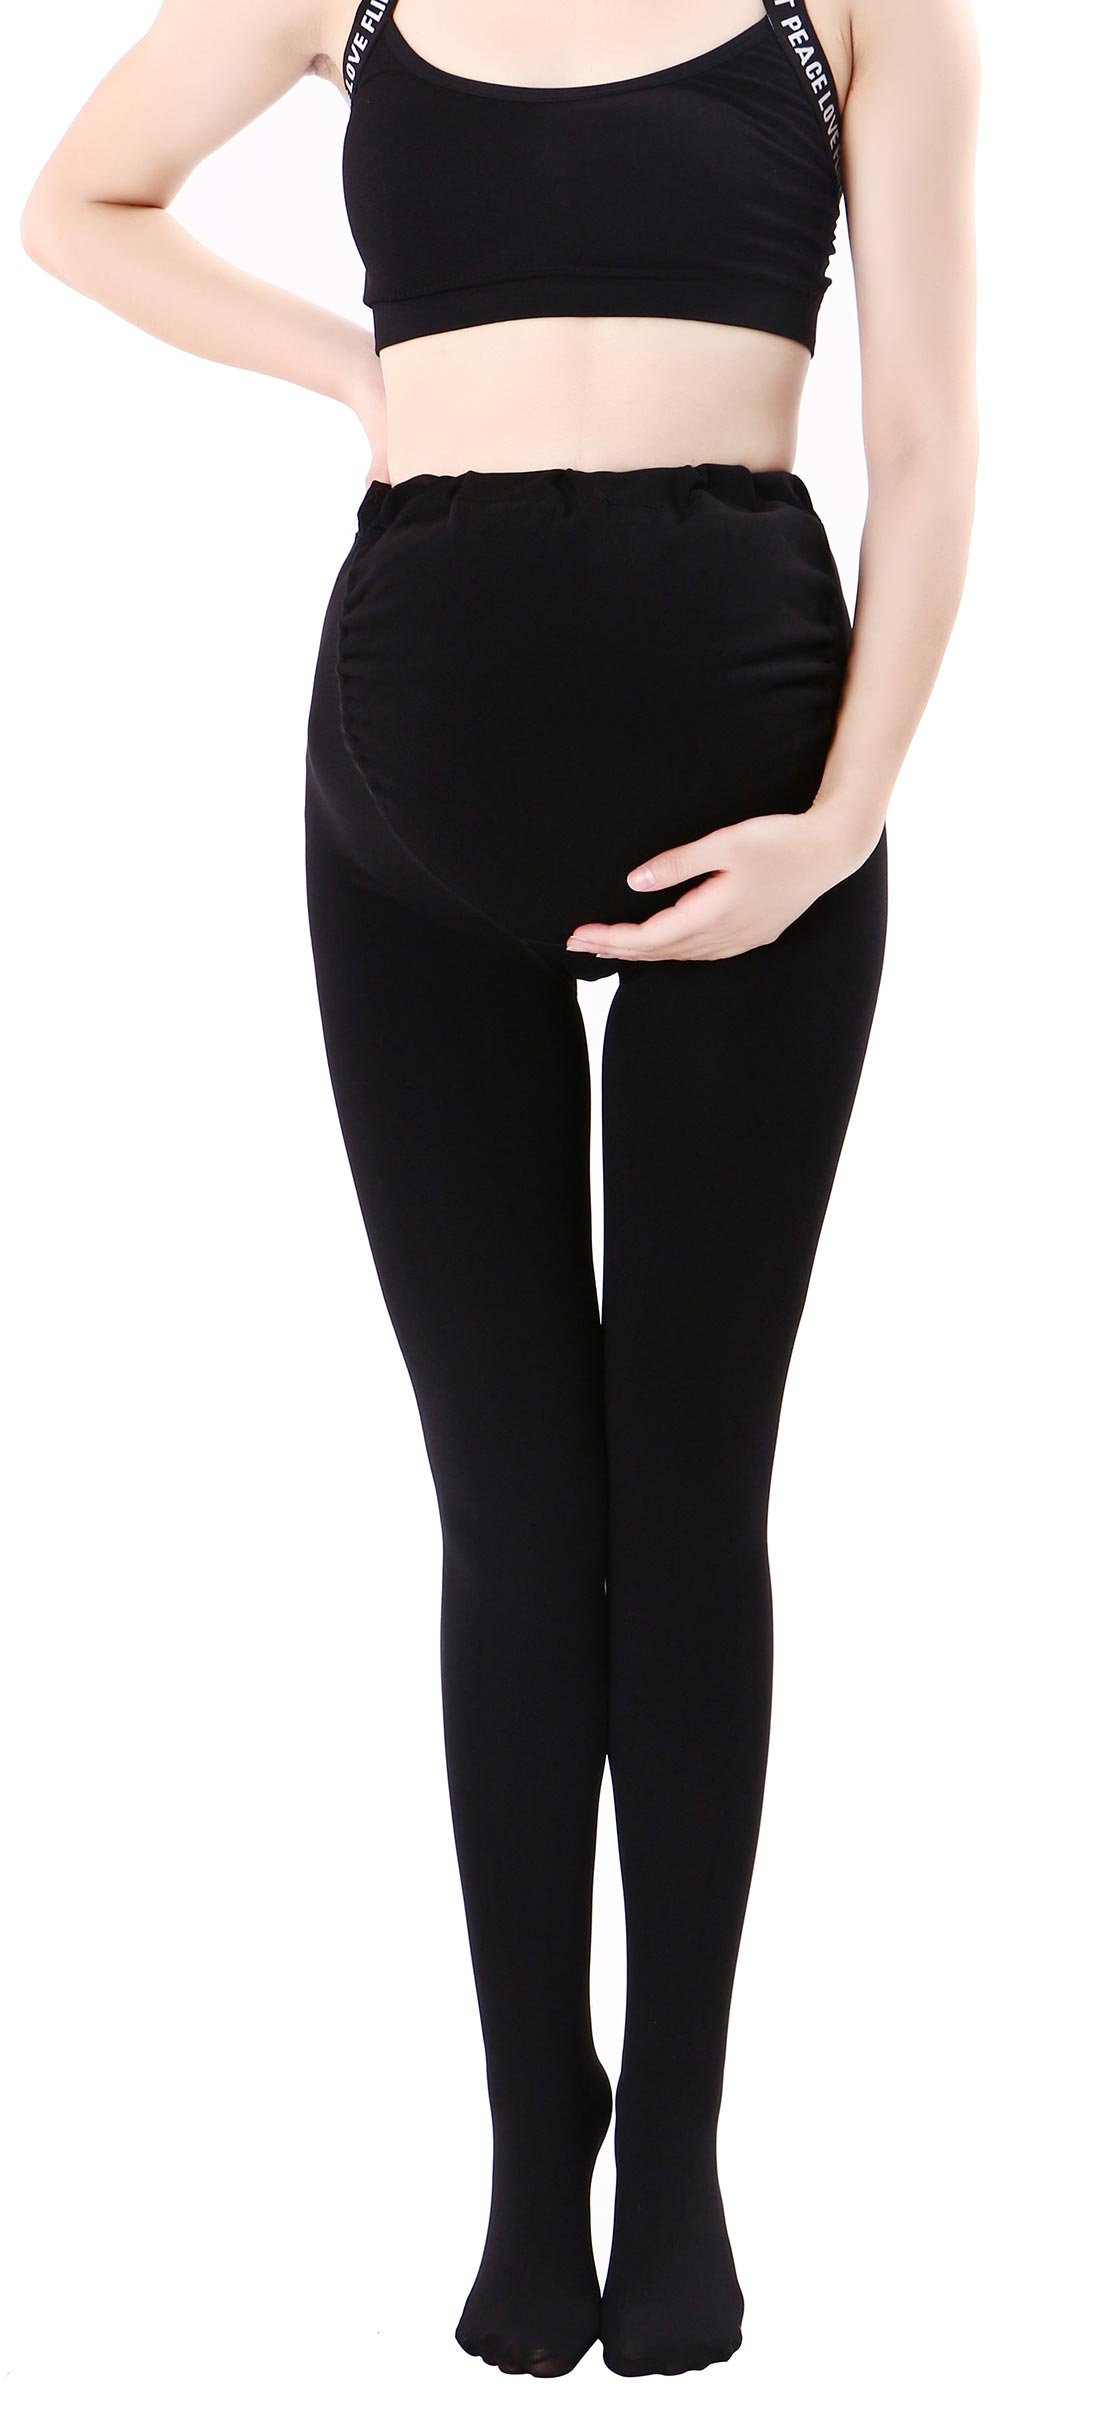 Maternity Support Compression Stockings Full Support Stretch Maternity Leggings Pantyhose Pregnancy Pants Black